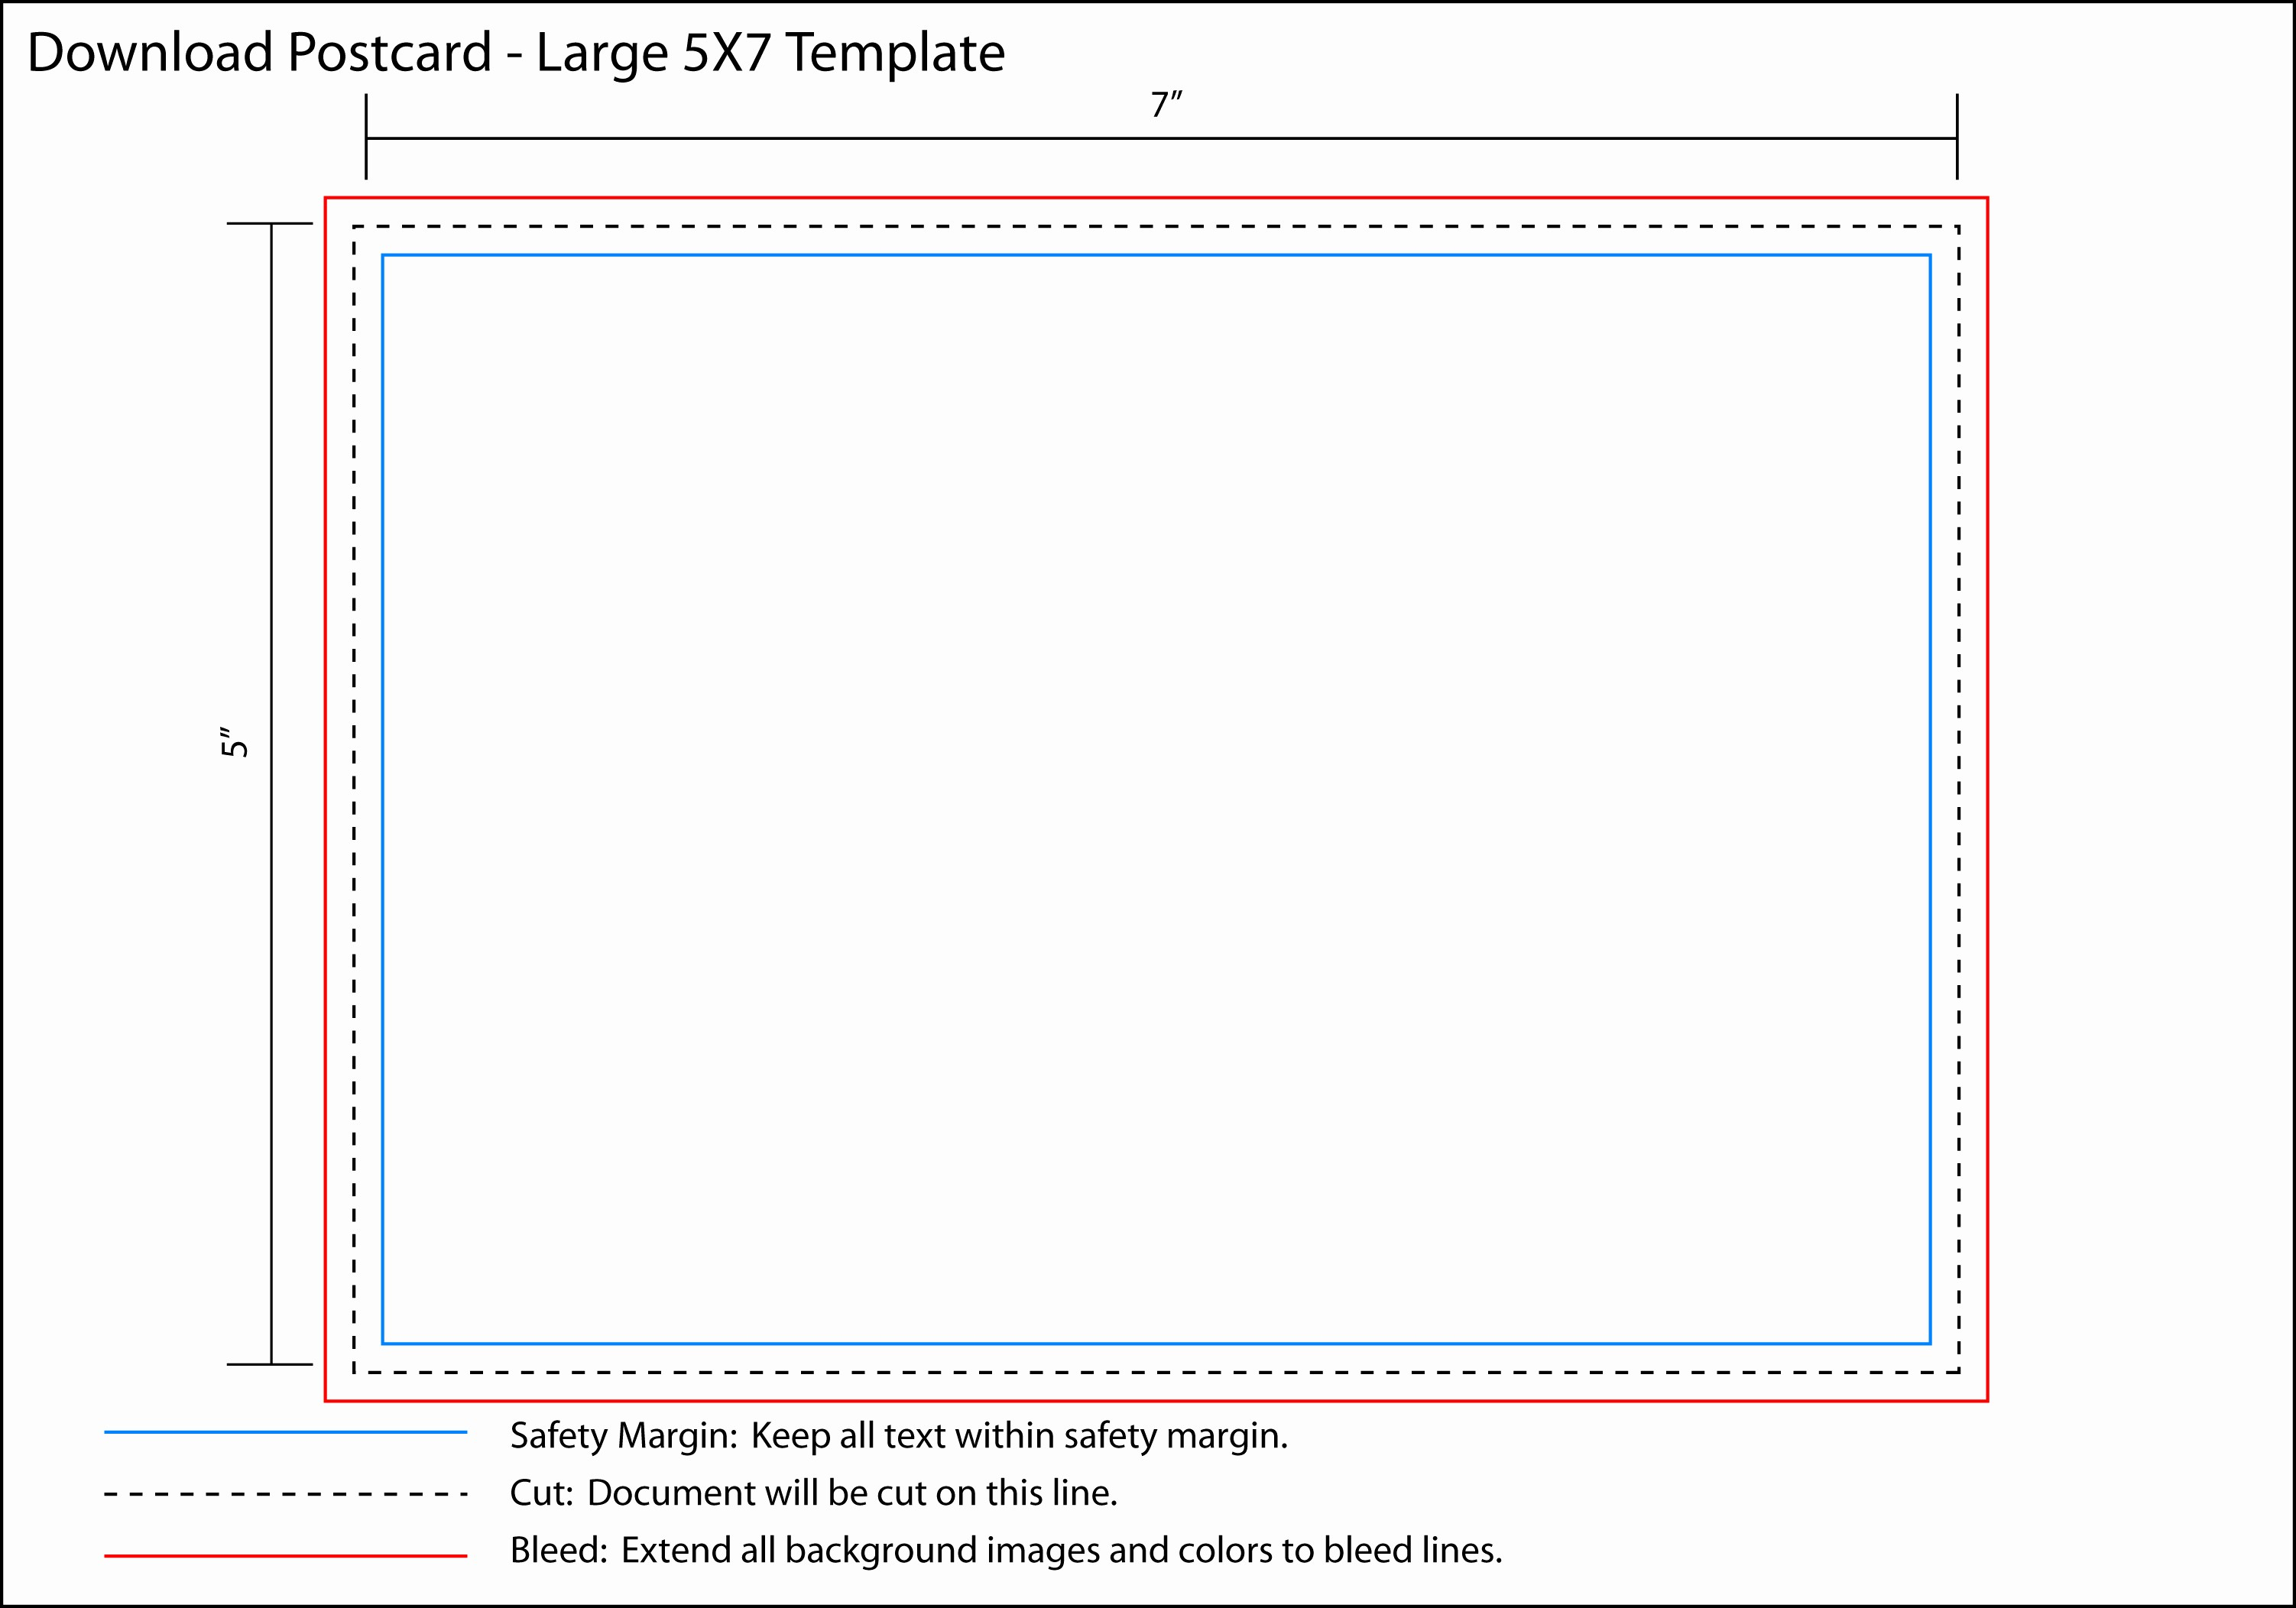 5x7 Greeting Card Template Word New Pin 5x7 Postcard Template On Pinterest